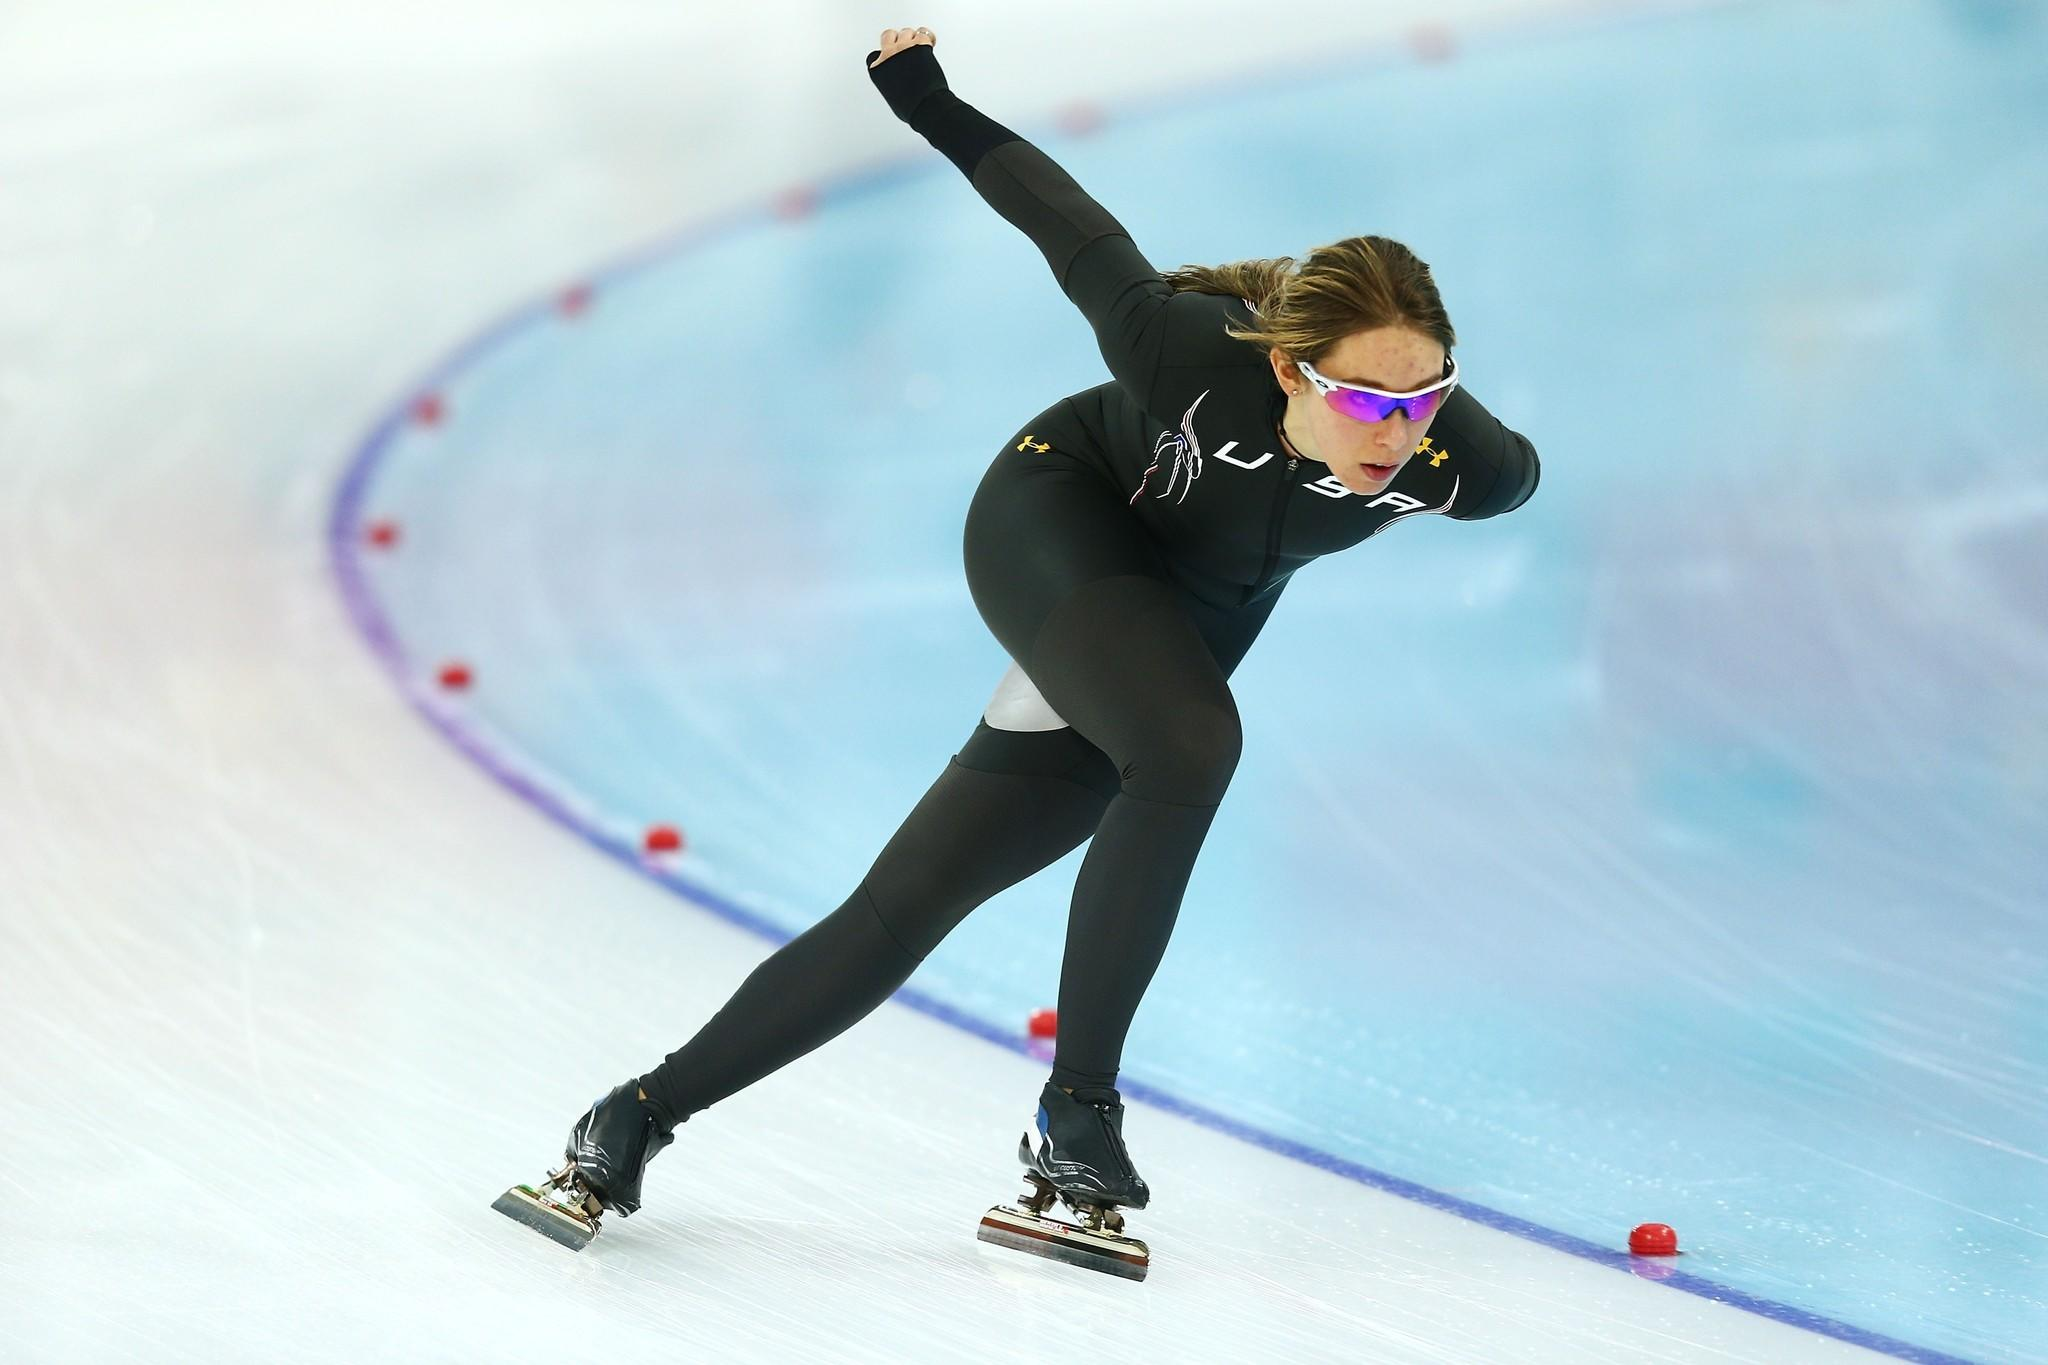 Jilleanne Rookard skates during a training session prior to the Sochi 2014 Winter Olympics at the Adler Arena Skating Center. (Clive Mason/Getty Photo)